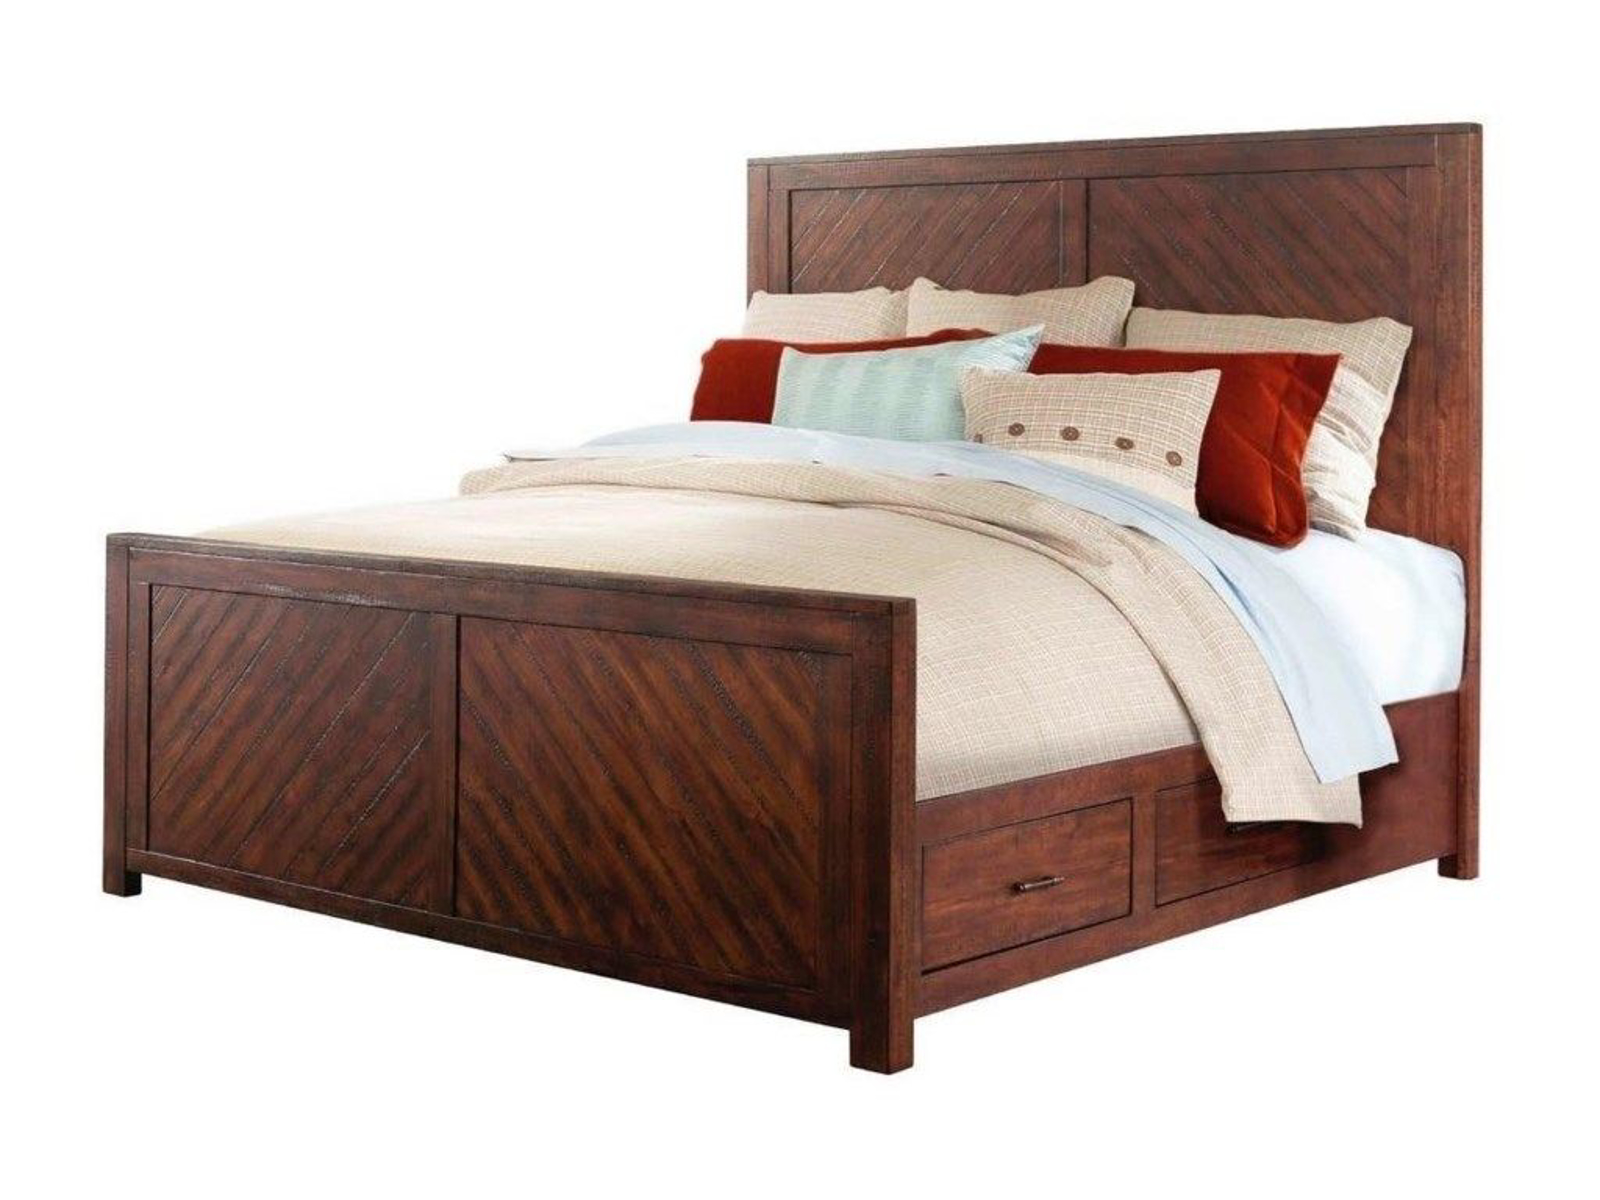 Picture of Jax King Size Bed